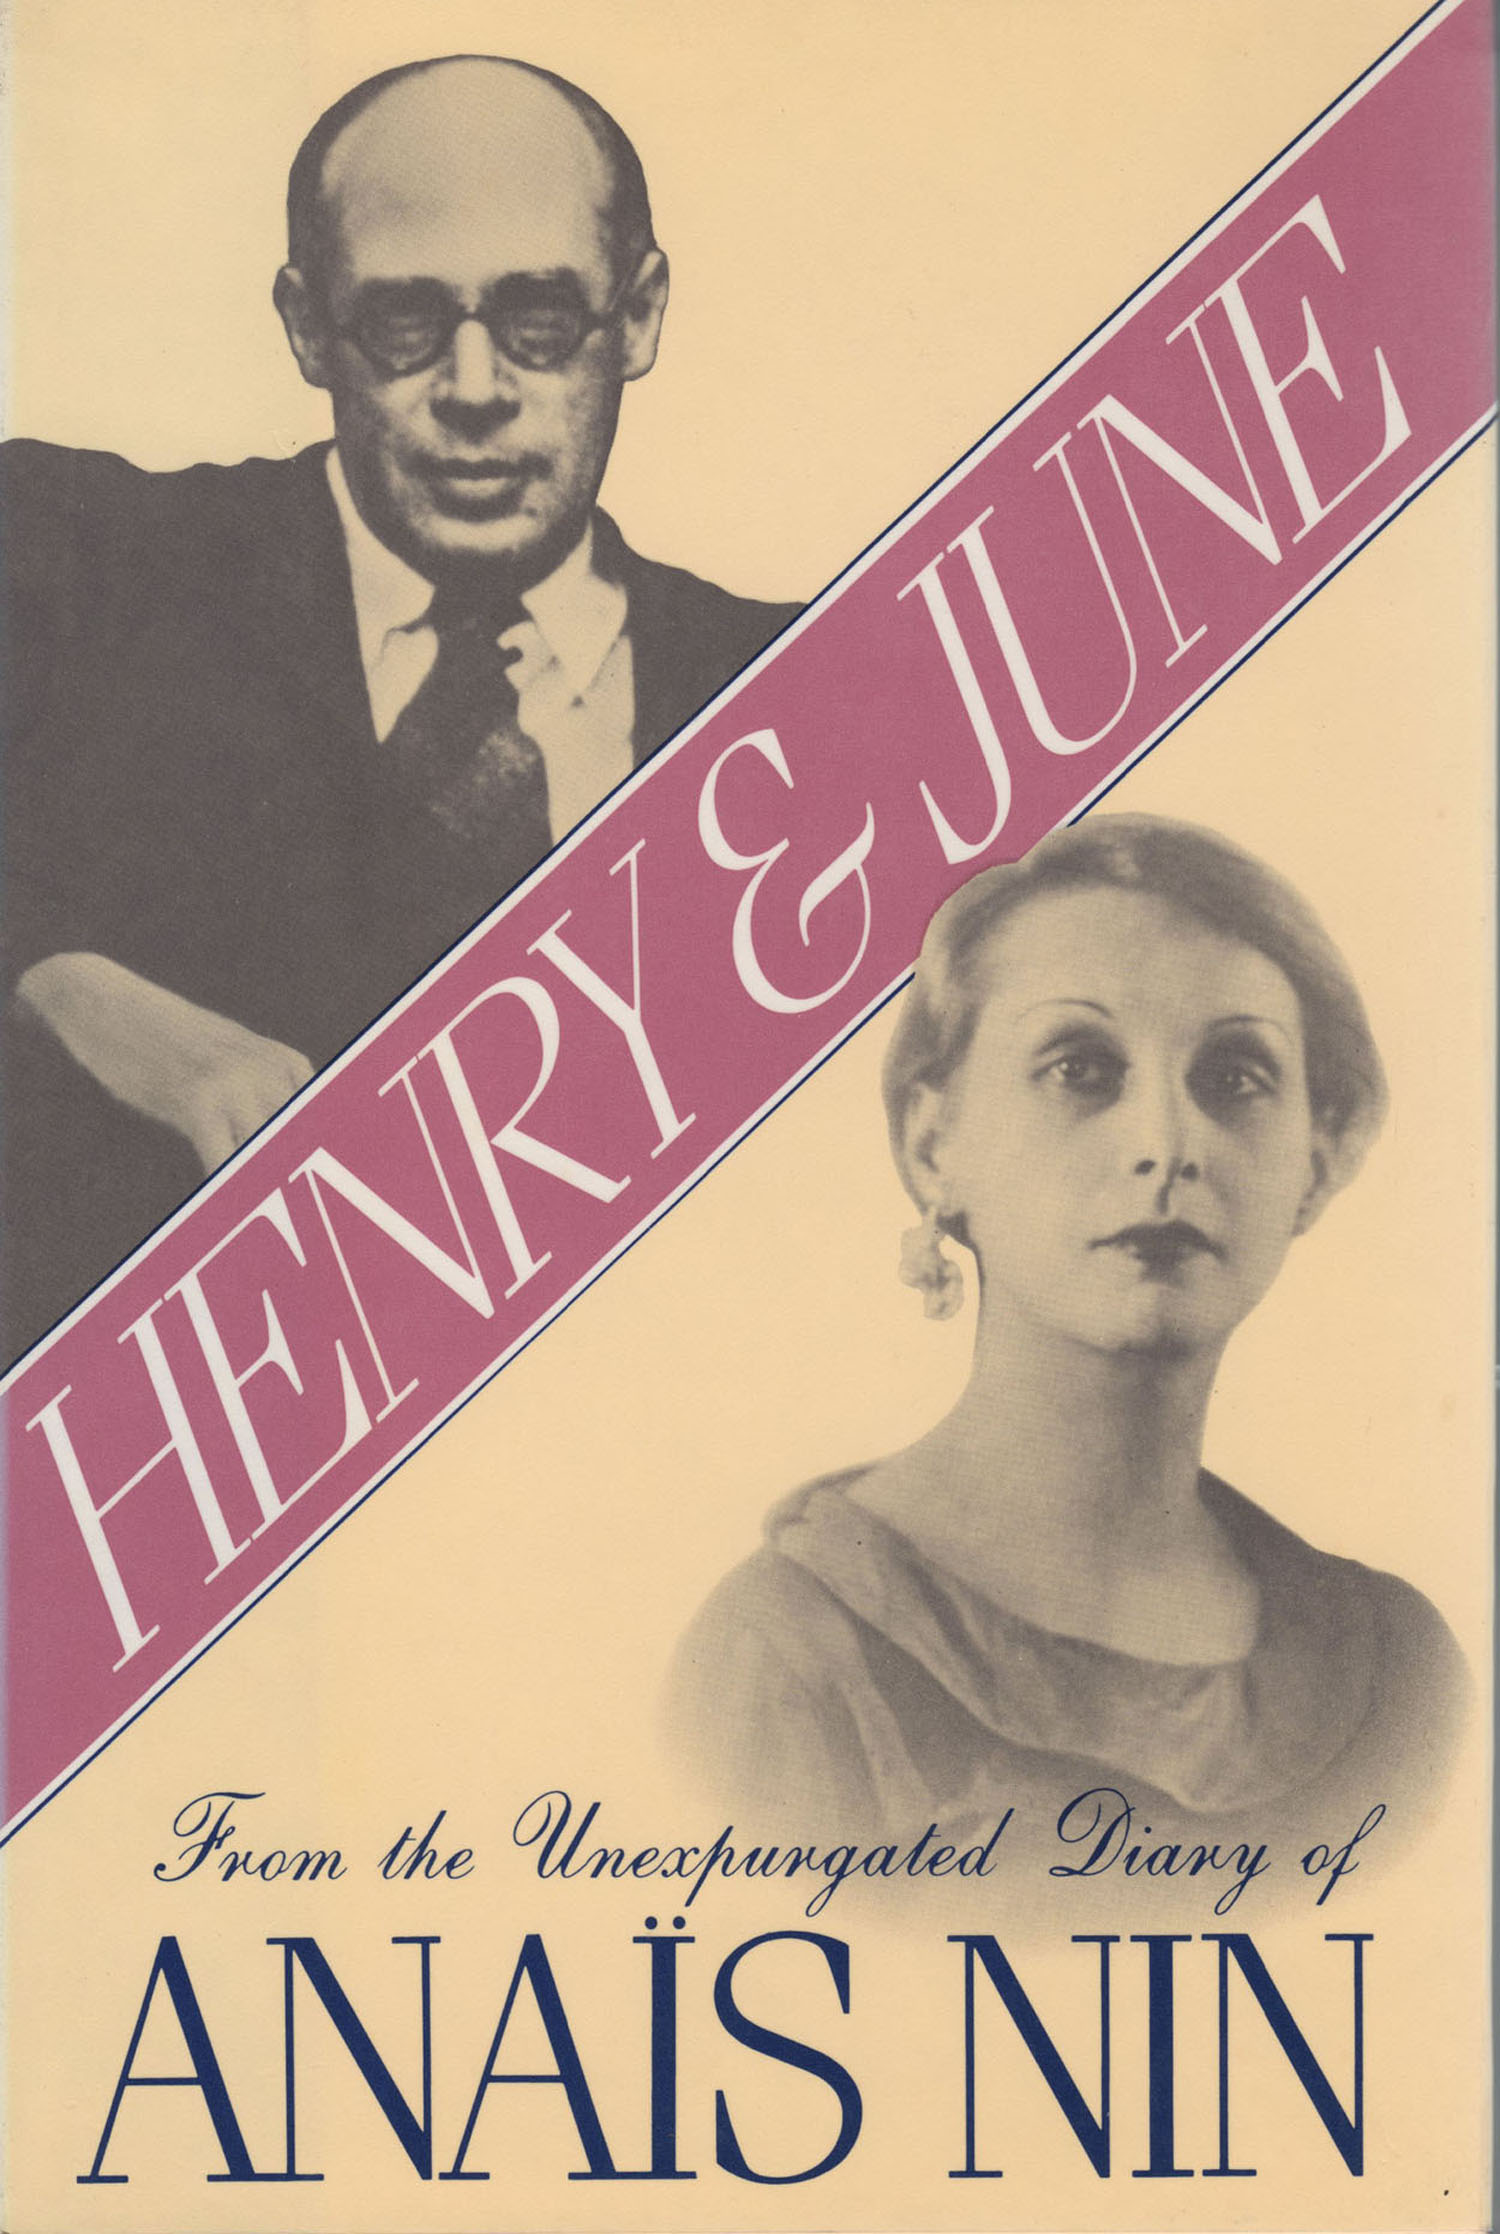 Henry and June: The Unexpurgated Diary of Anais Nin 1931-1932